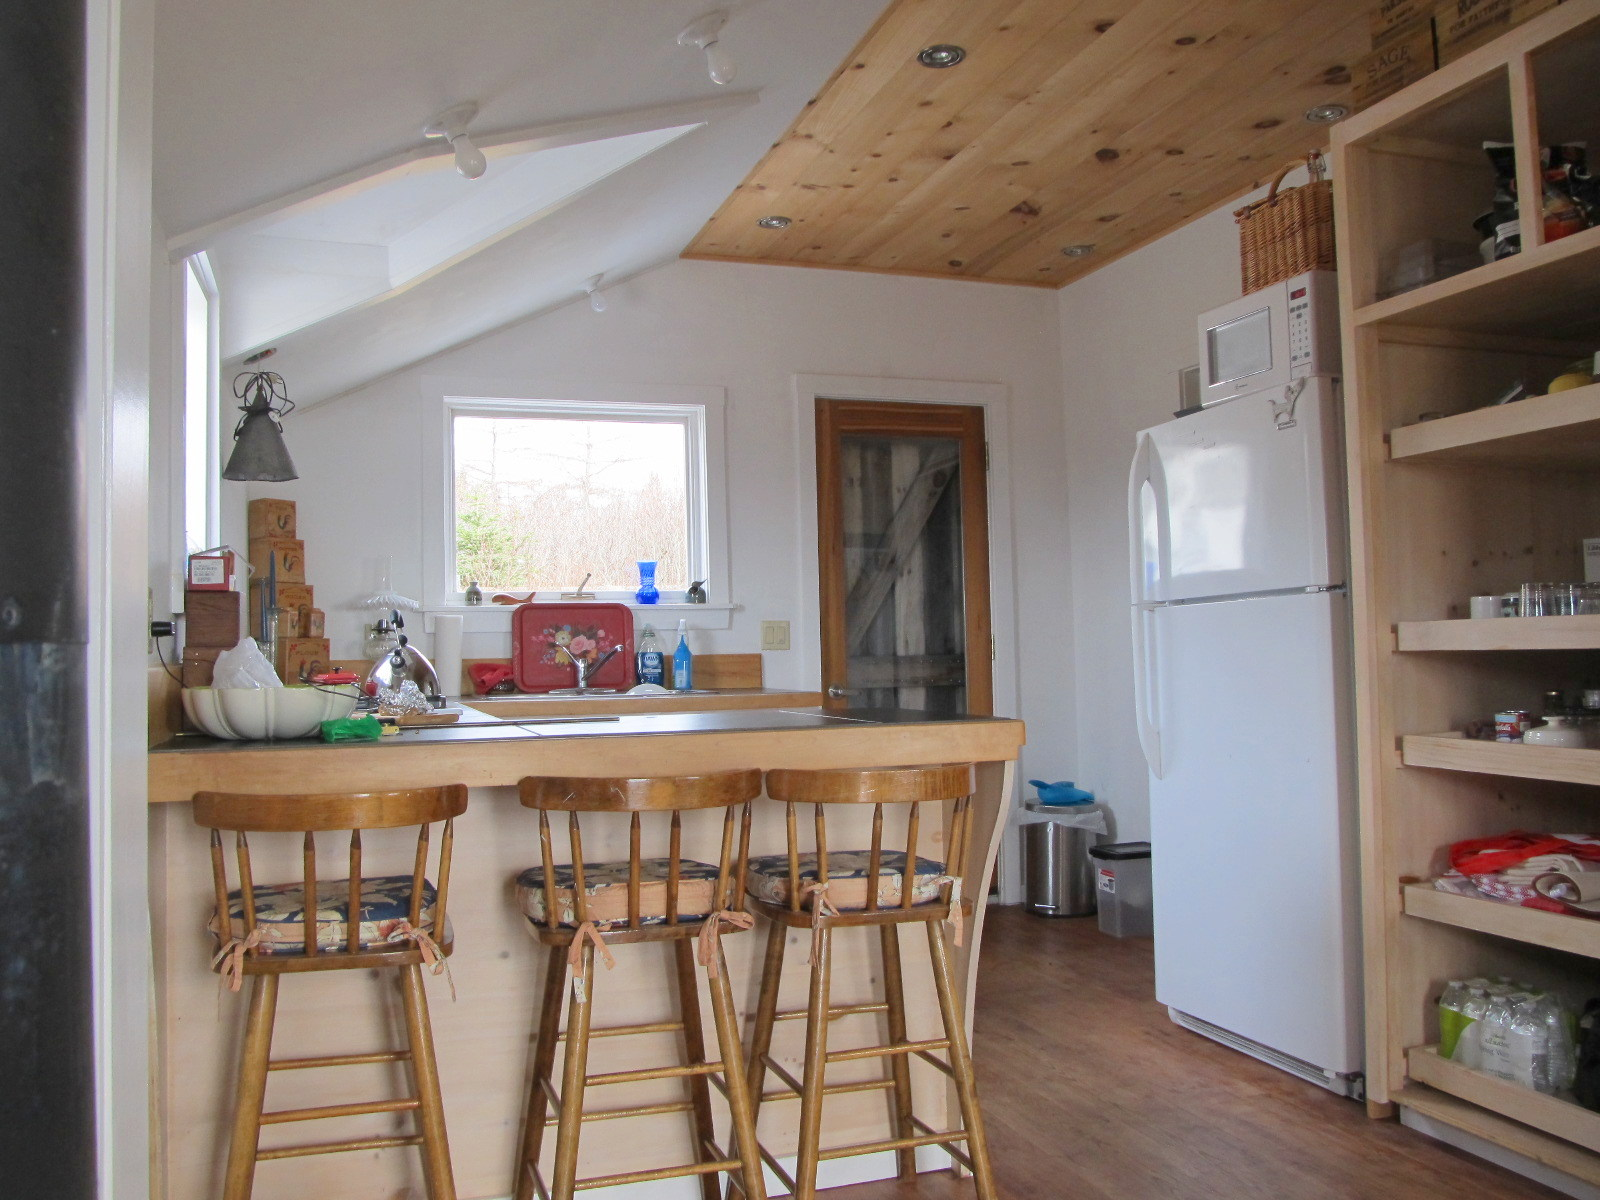 Gallery: Coastal cottage on Grand Manan Island   Small House Bliss on brown home furniture, lake home furniture, pulaski home furniture, sterling home furniture, western home furniture, awesome home furniture, patio with fire pit furniture, hamilton home furniture, cherokee home furniture, modern home furniture, beautiful home furniture, phillips home furniture, george home furniture, lavish home furniture, noble home furniture, bright home furniture, classic home furniture, cheyenne home furniture, island home furniture, action home furniture,